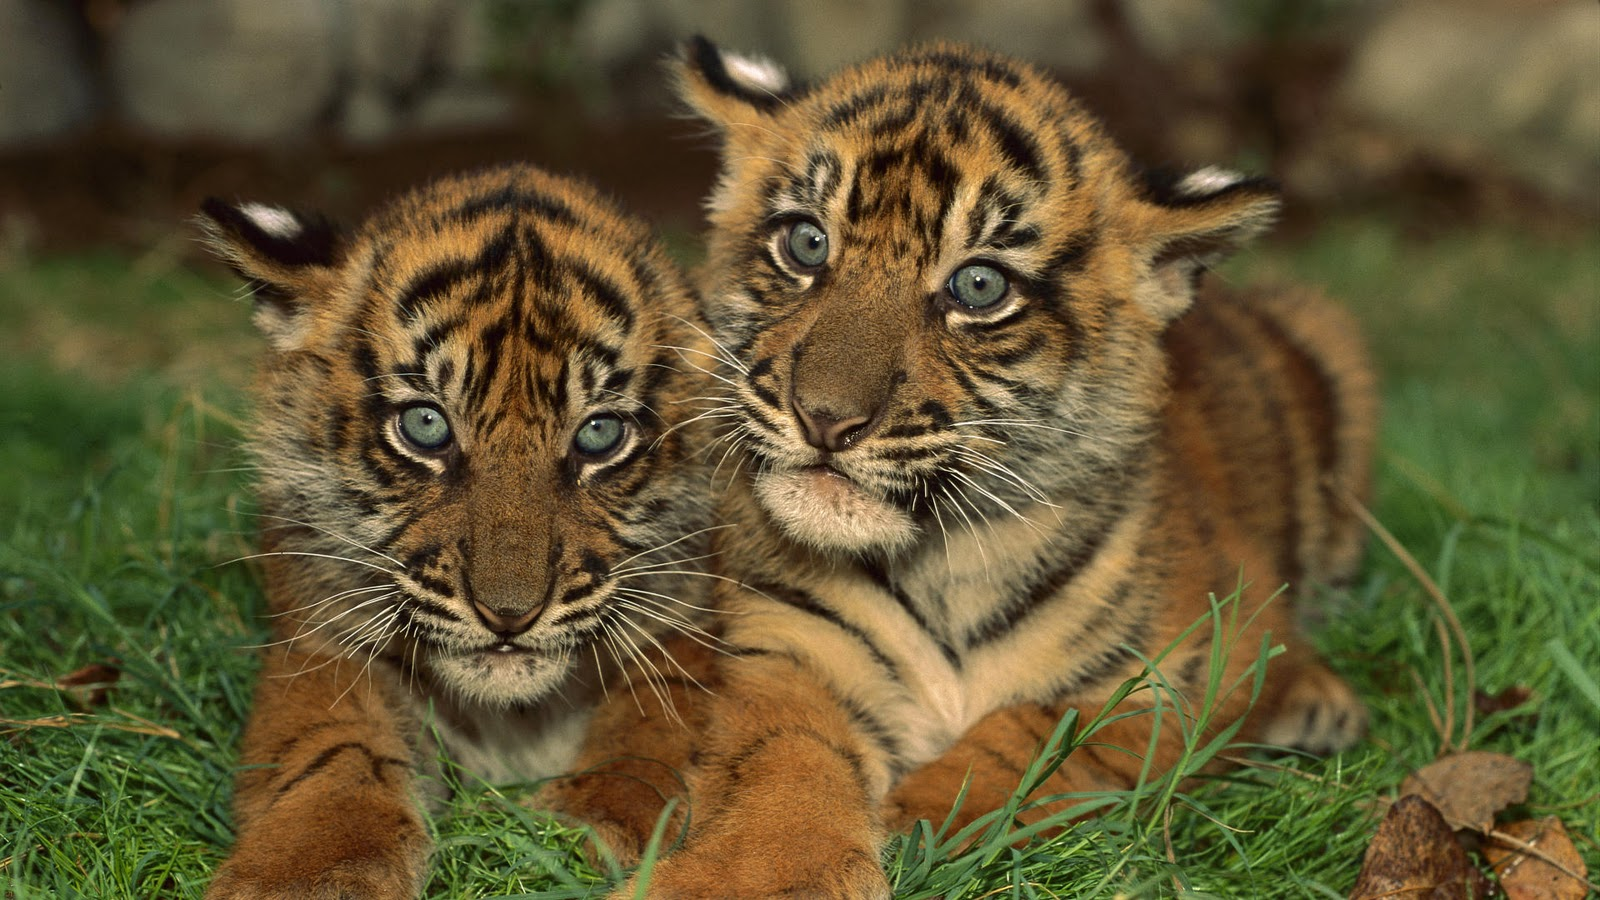 Cute tiger pictures - photo#10